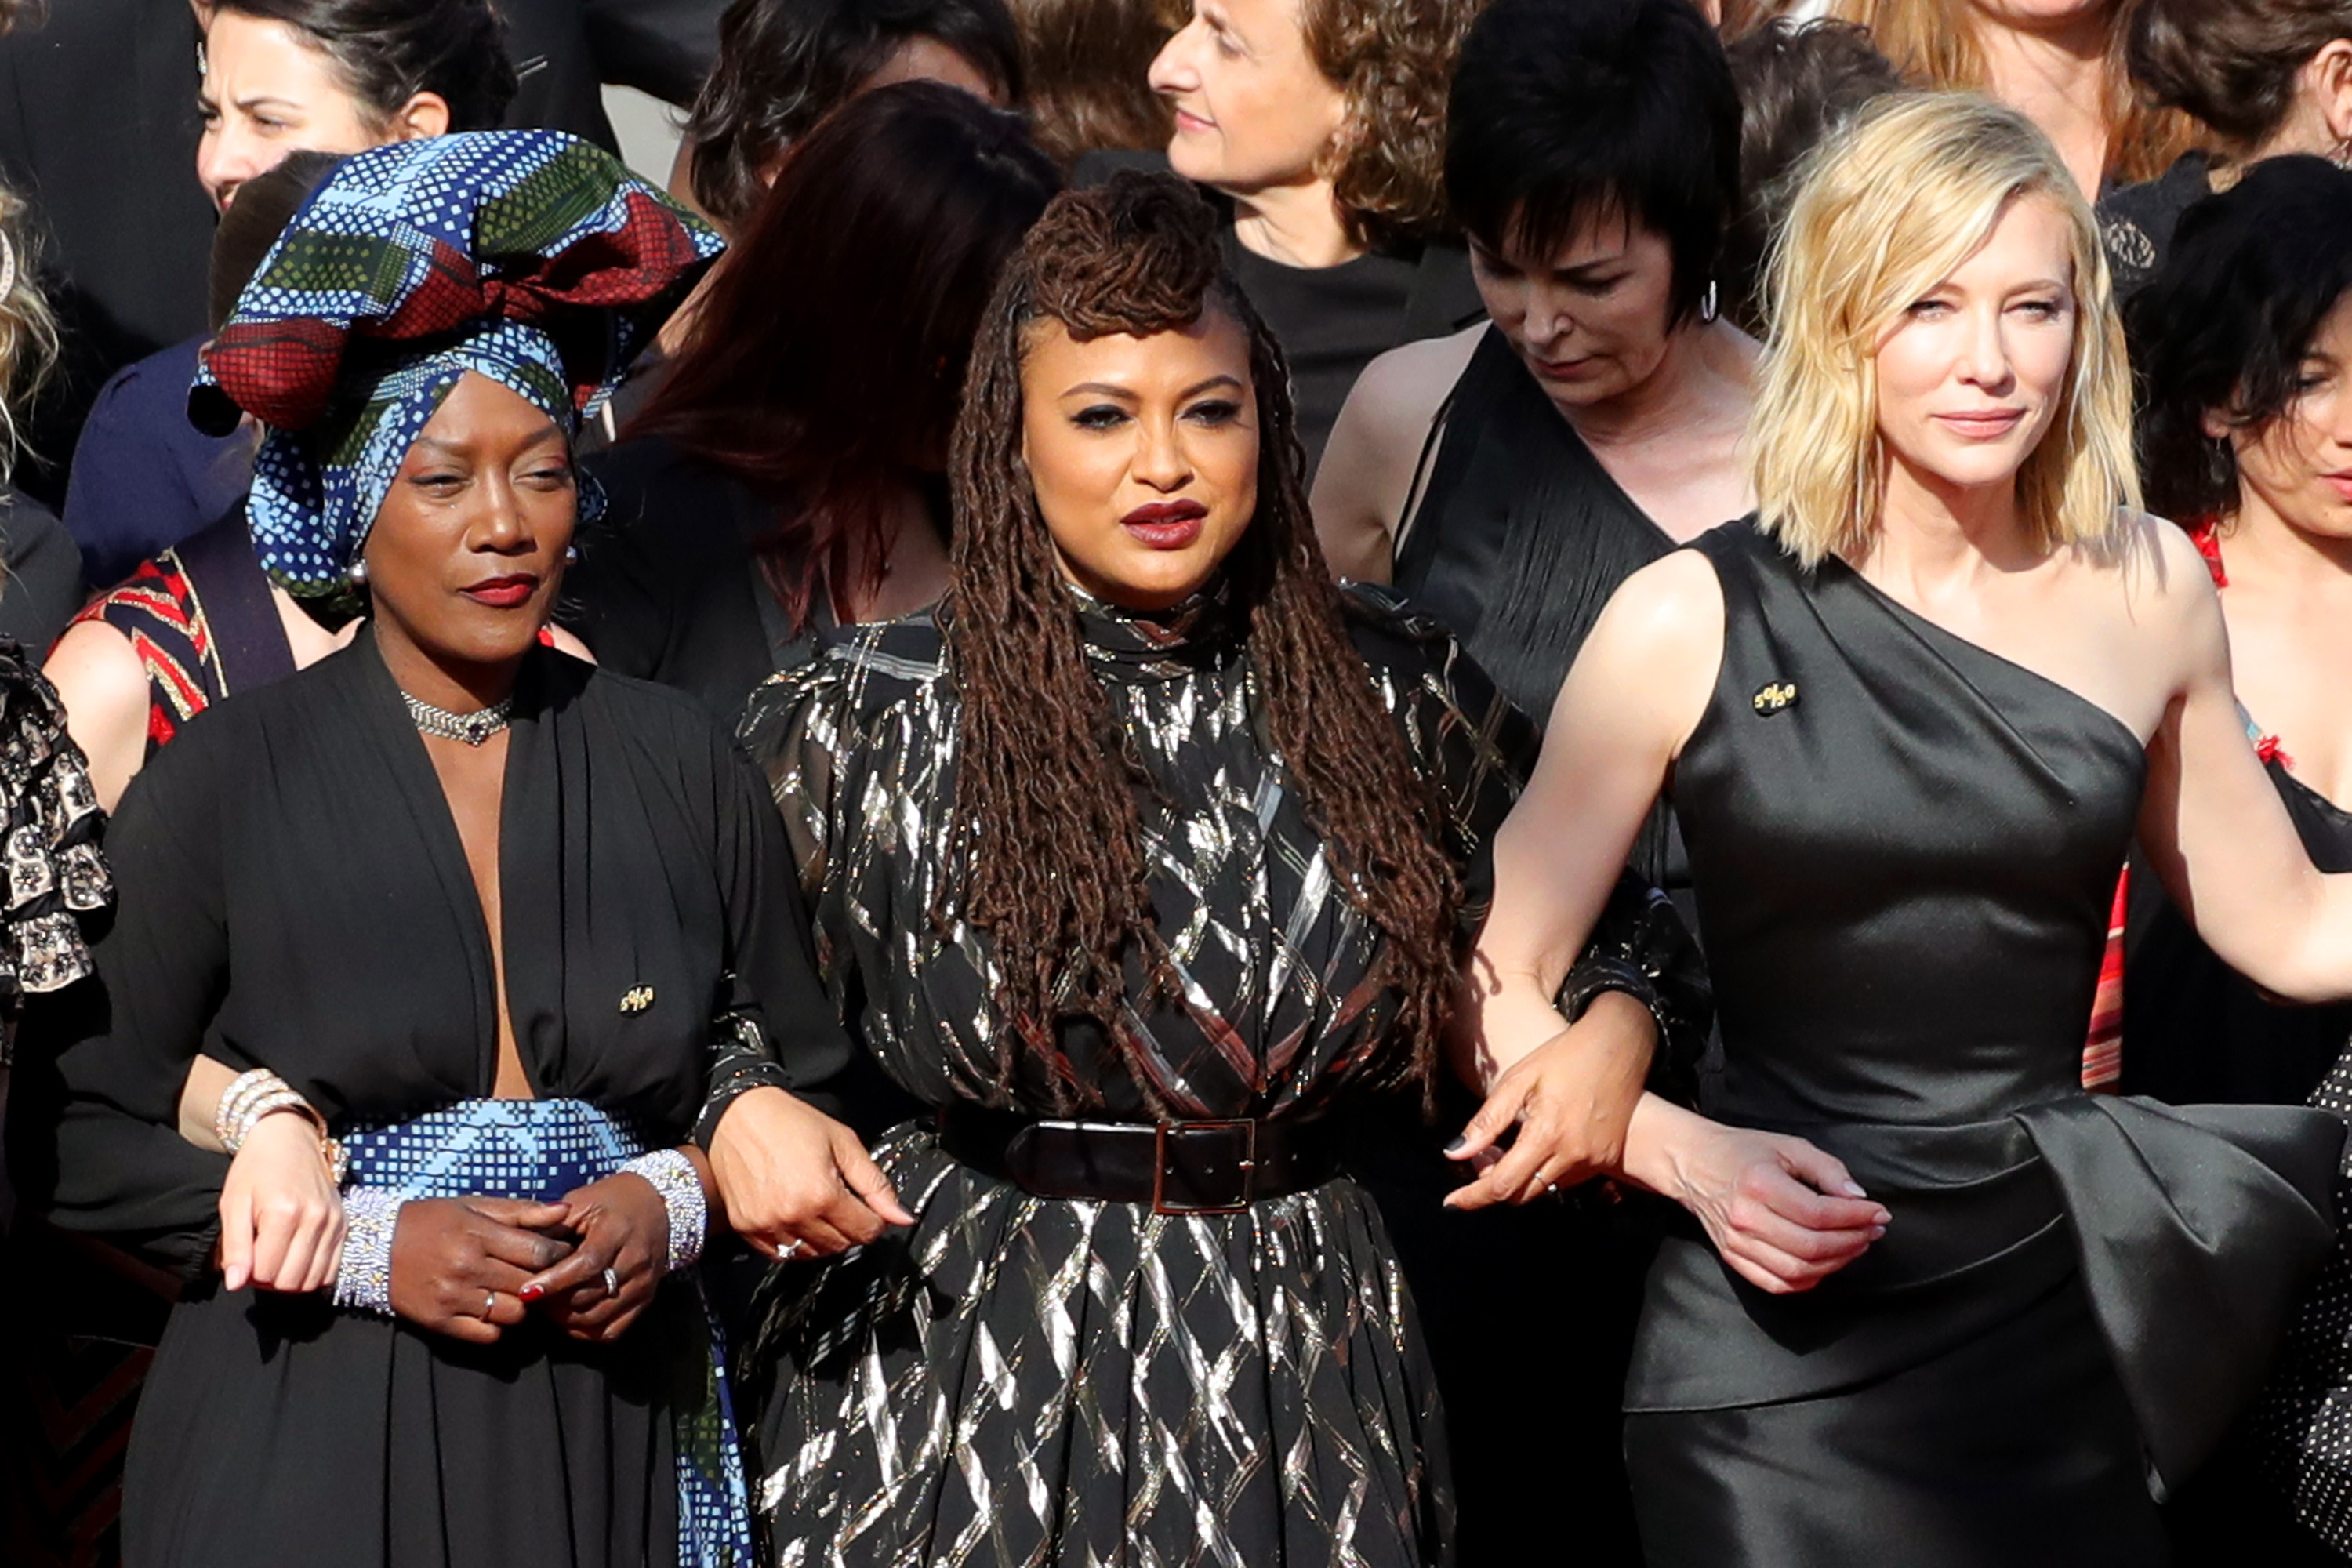 82 women protested gender inequity in the film industry on the red carpet at Cannes